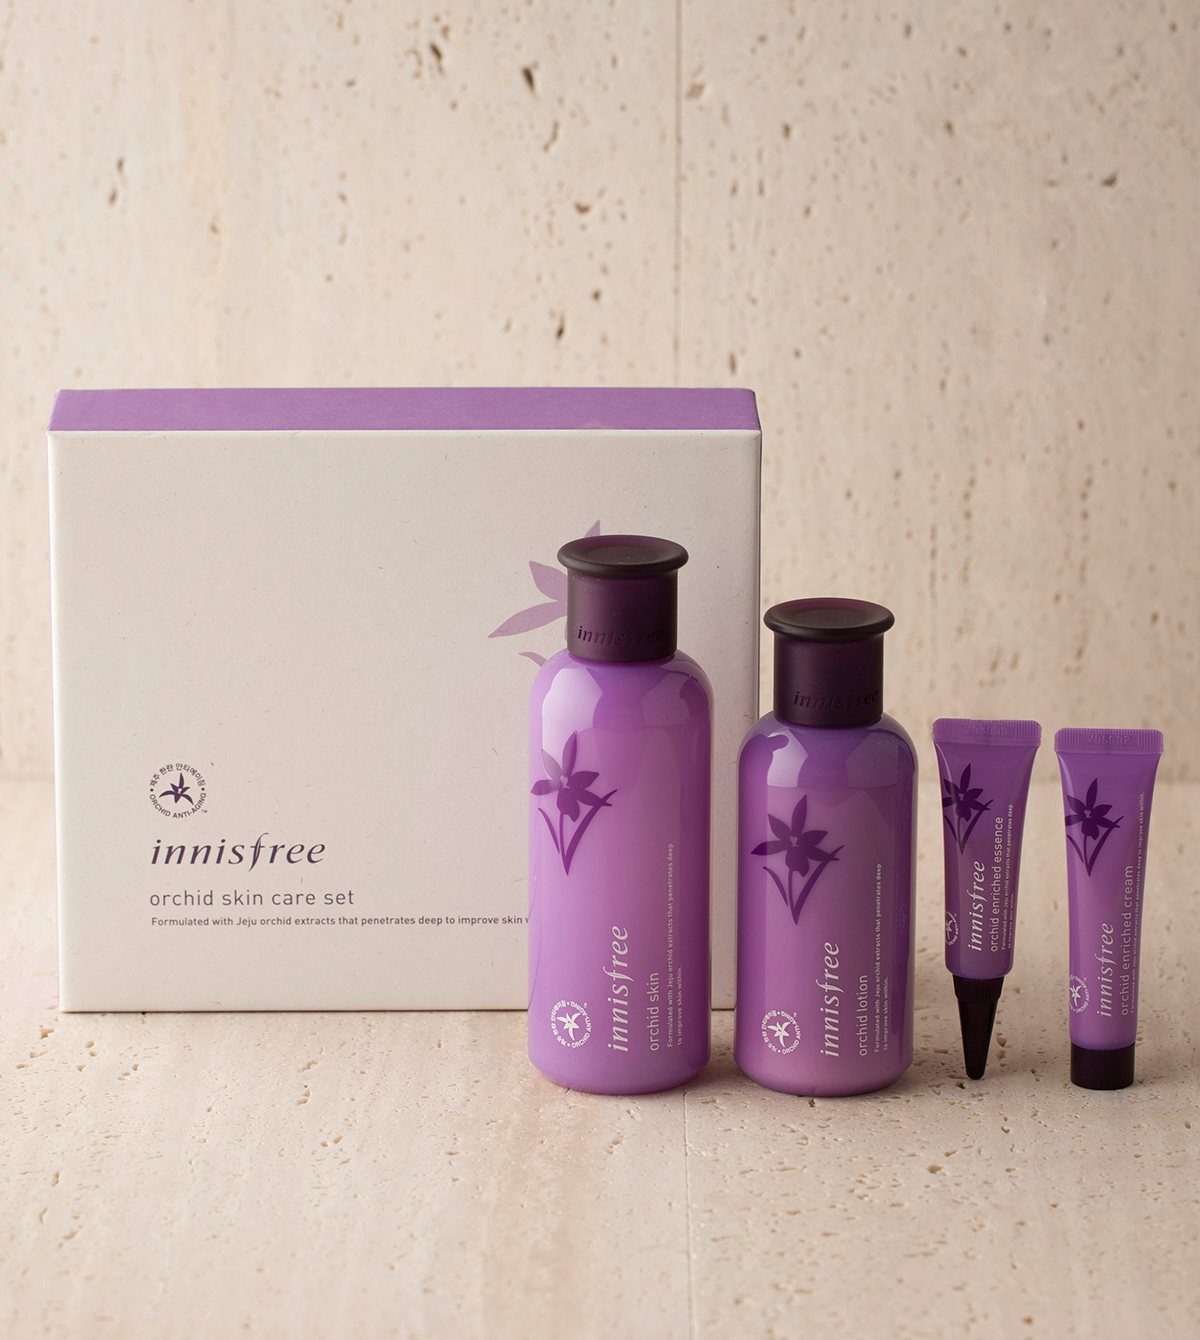 innisfree orchid skin care set